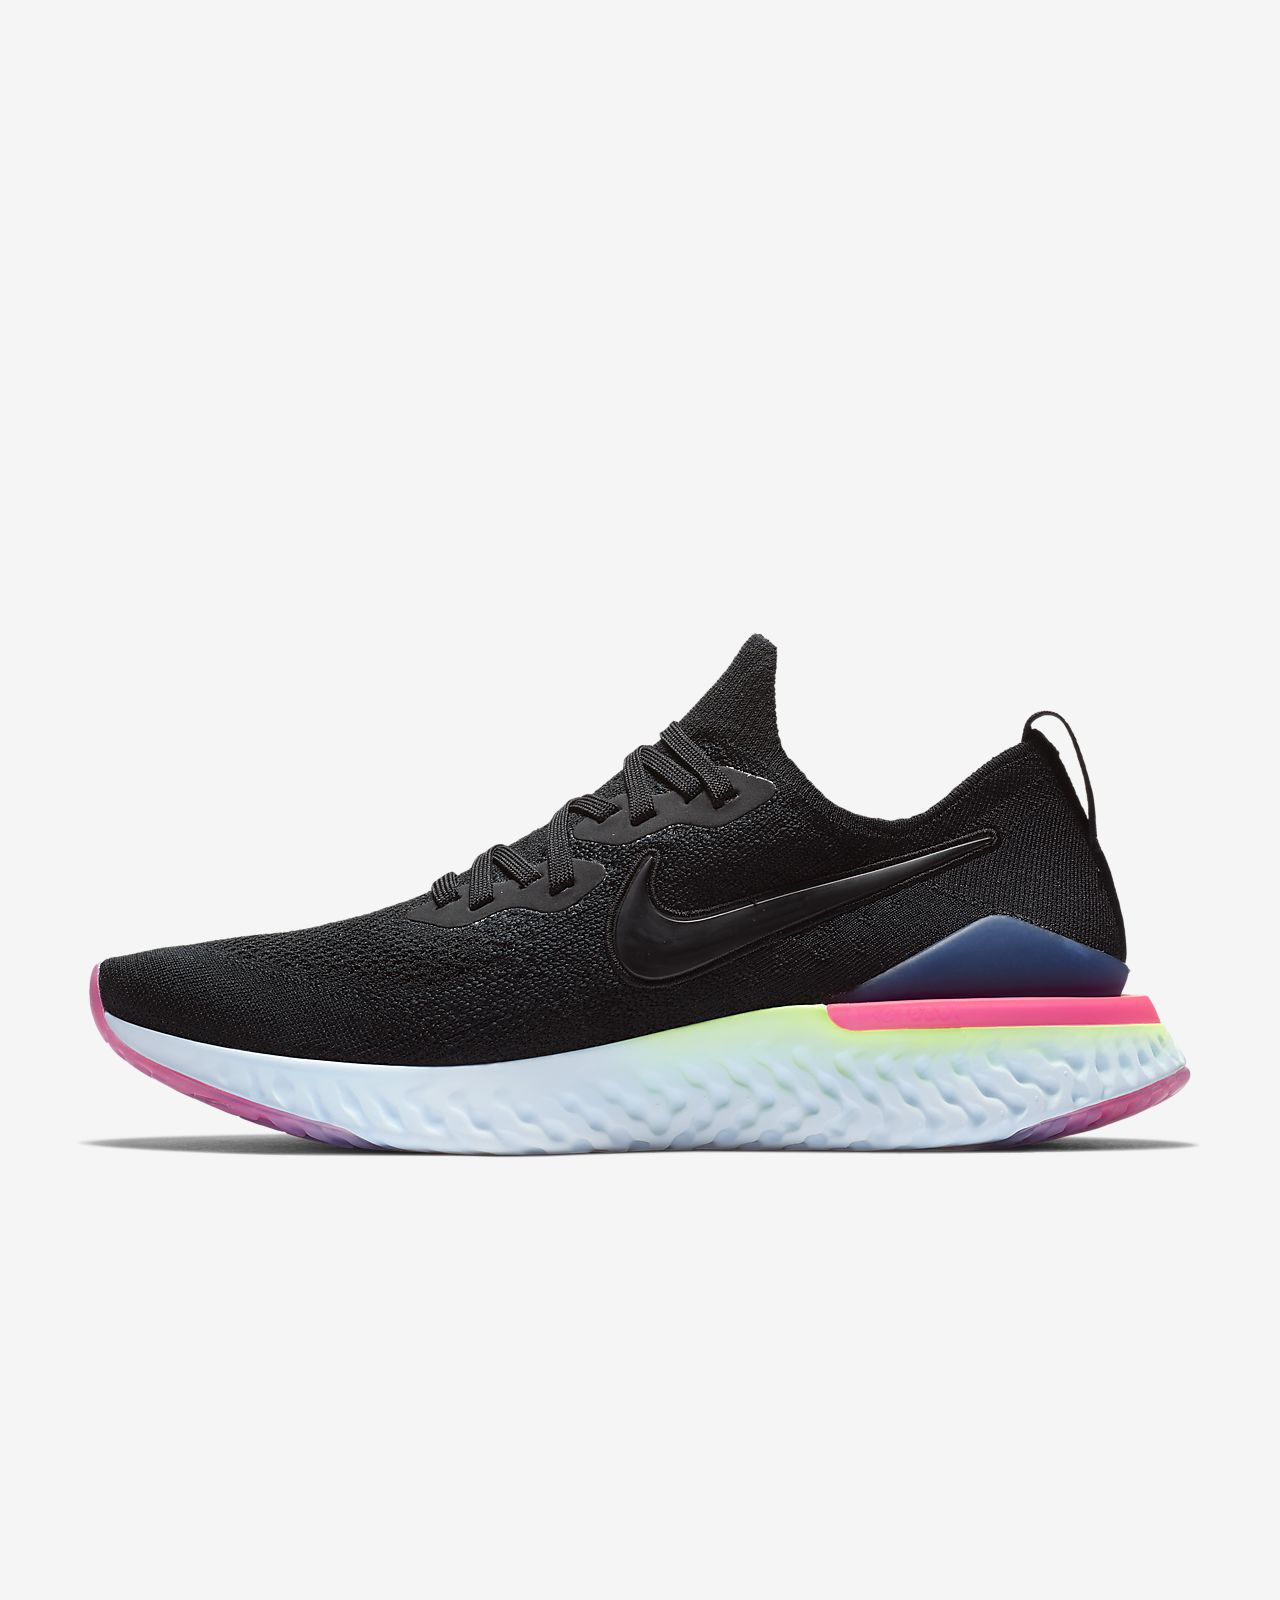 Cheap Adidas Shoes Online Free Shipping | Up to 30% Off at